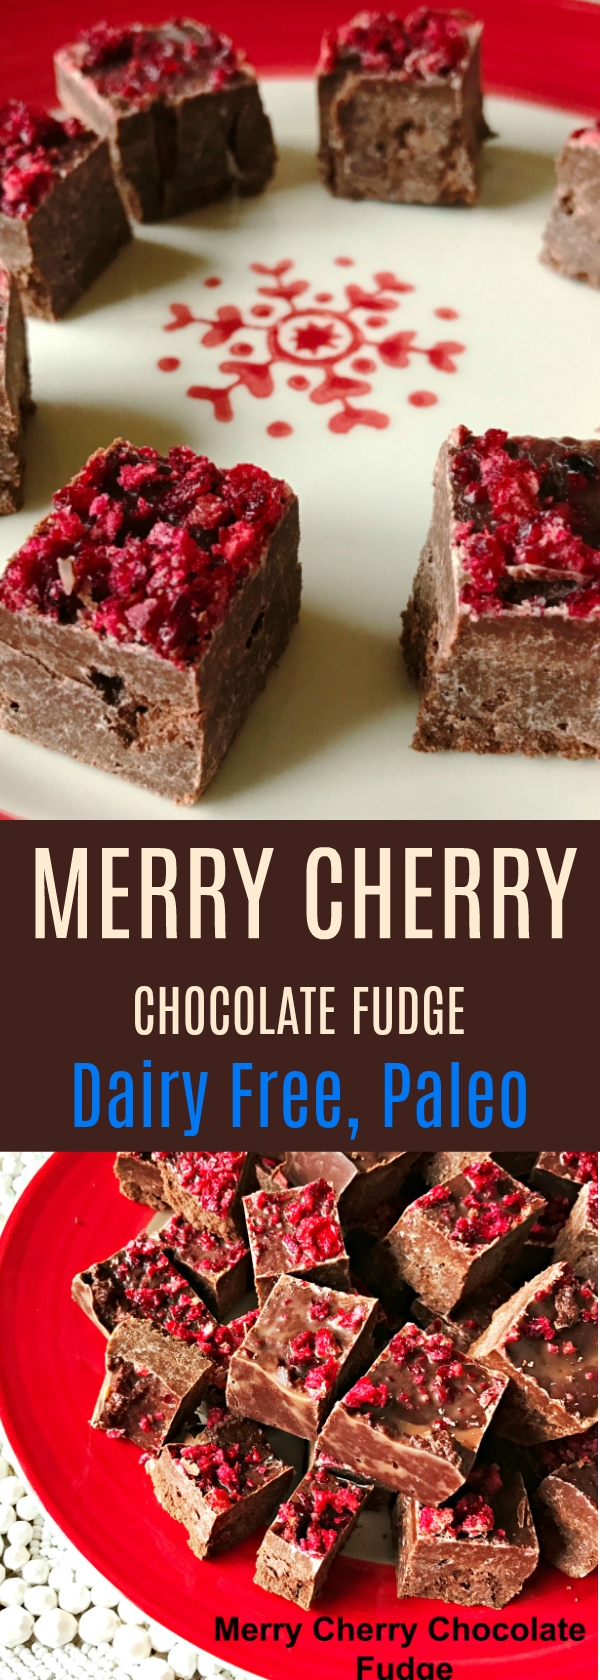 Merry Cherry Chocolate Fudge Dairy Free, Paleo